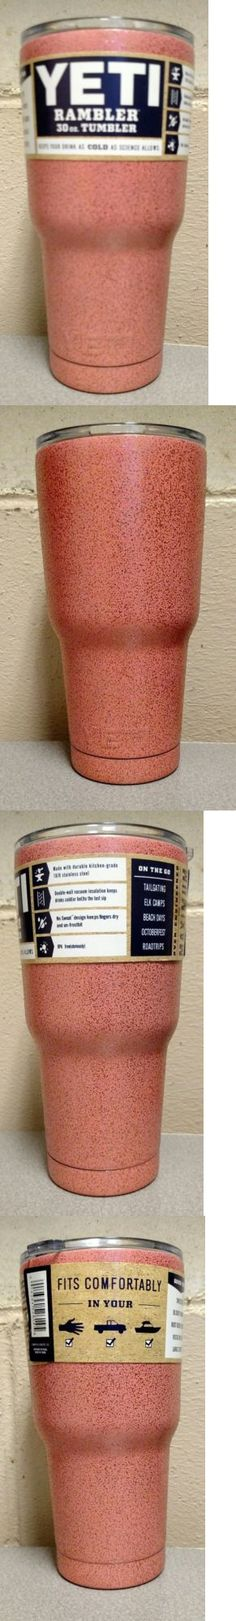 Other Camping Cooking Supplies 16036: Yeti! 30Oz Rambler Tumbler-Pink Rose Gold Sparkle-New!-Free Priority Shipping! -> BUY IT NOW ONLY: $35.99 on eBay!